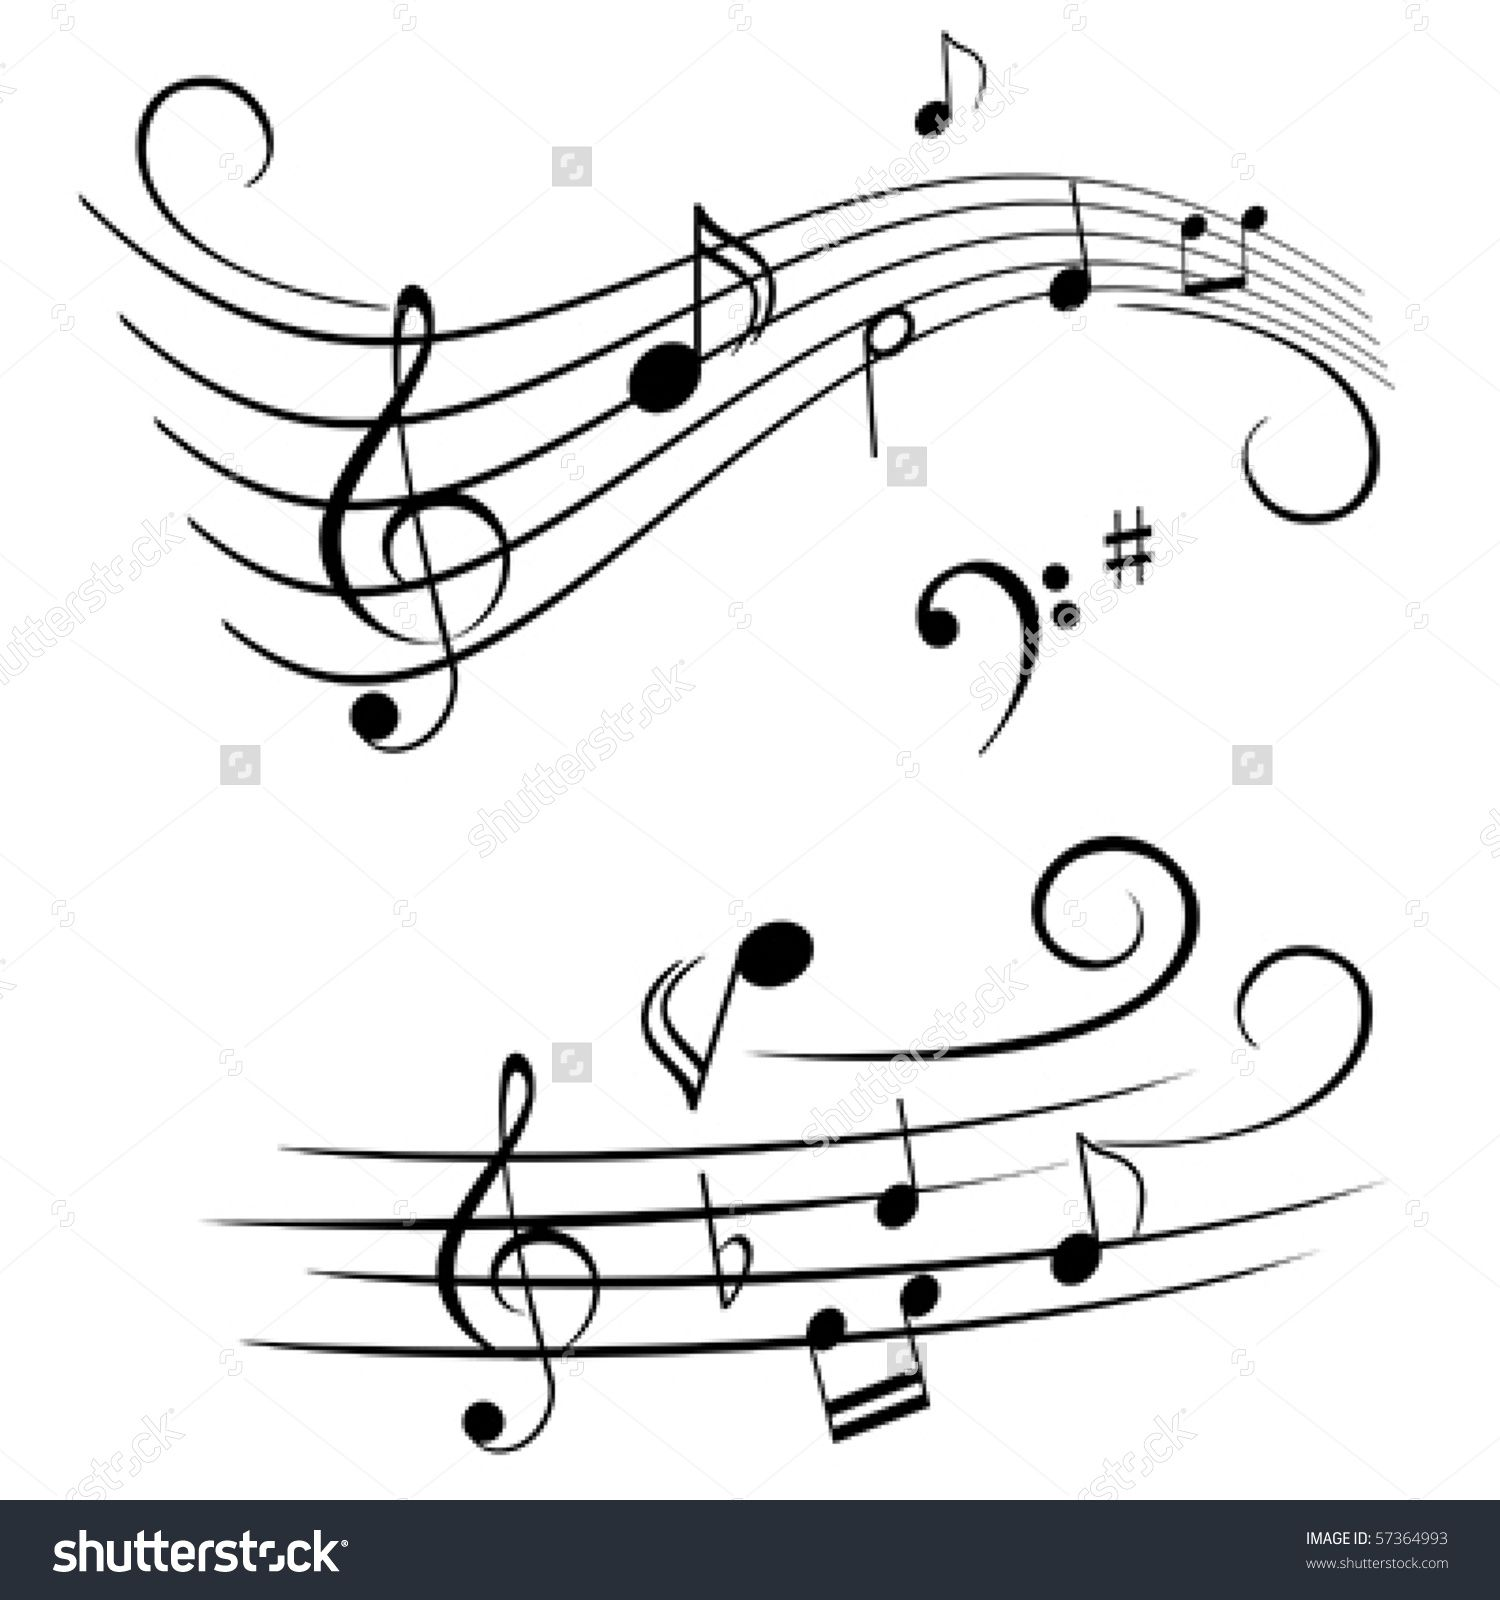 Violinn music note clipart vector download Image result for clipart free music staff abstract | Tangles ... vector download